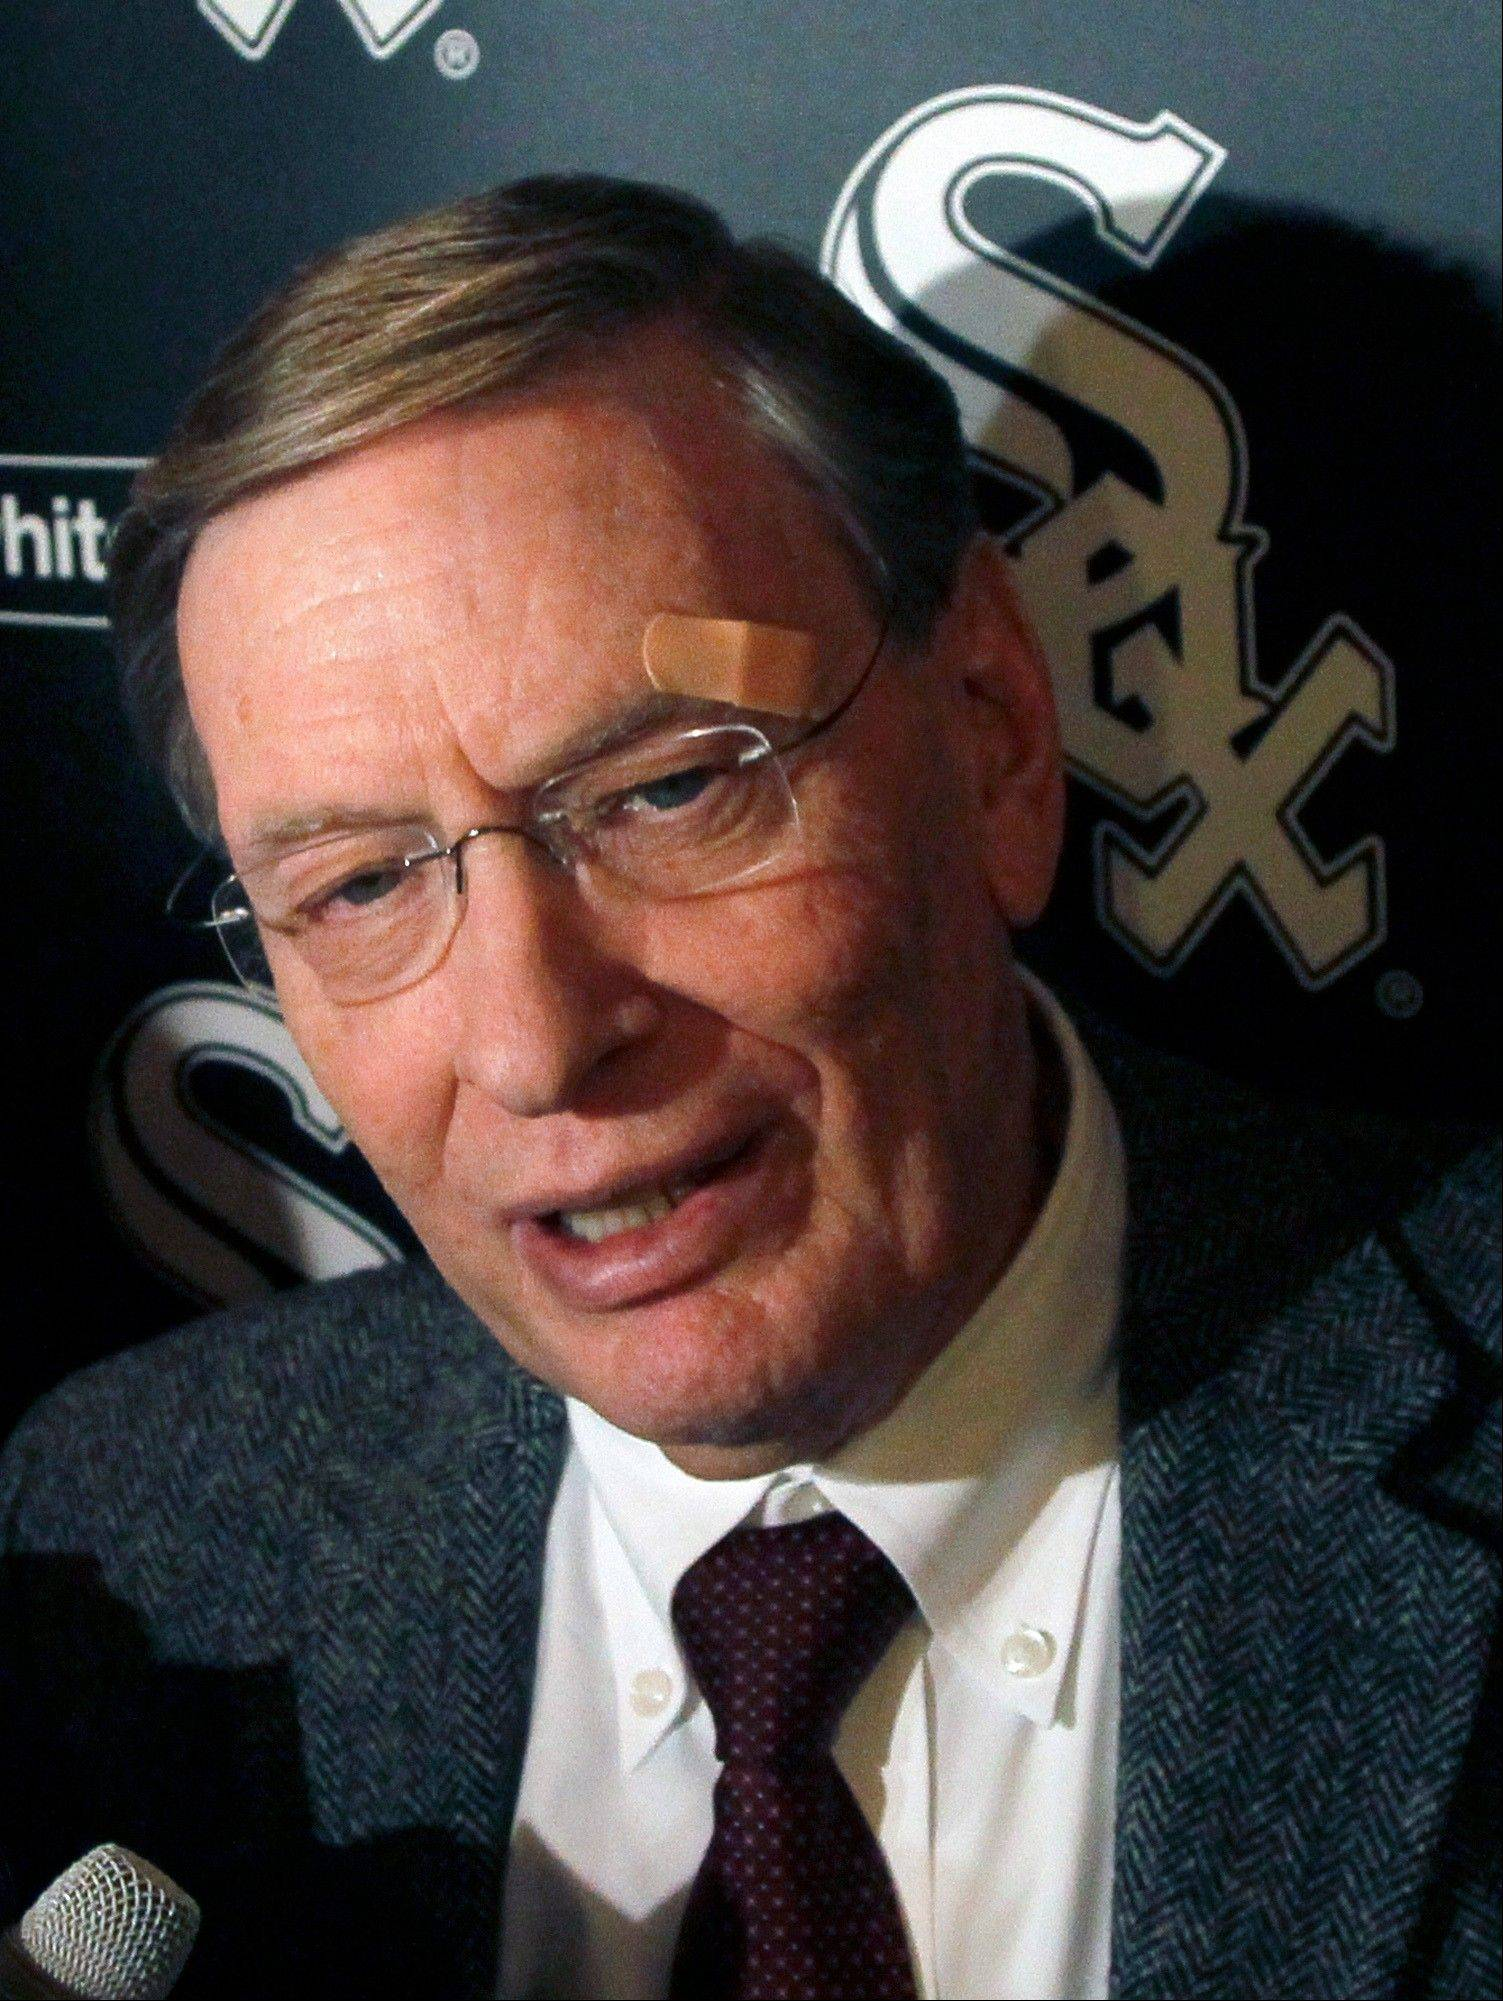 Baseball Commissioner Bud Selig responds to a question at the Chicago White Sox fan festival.